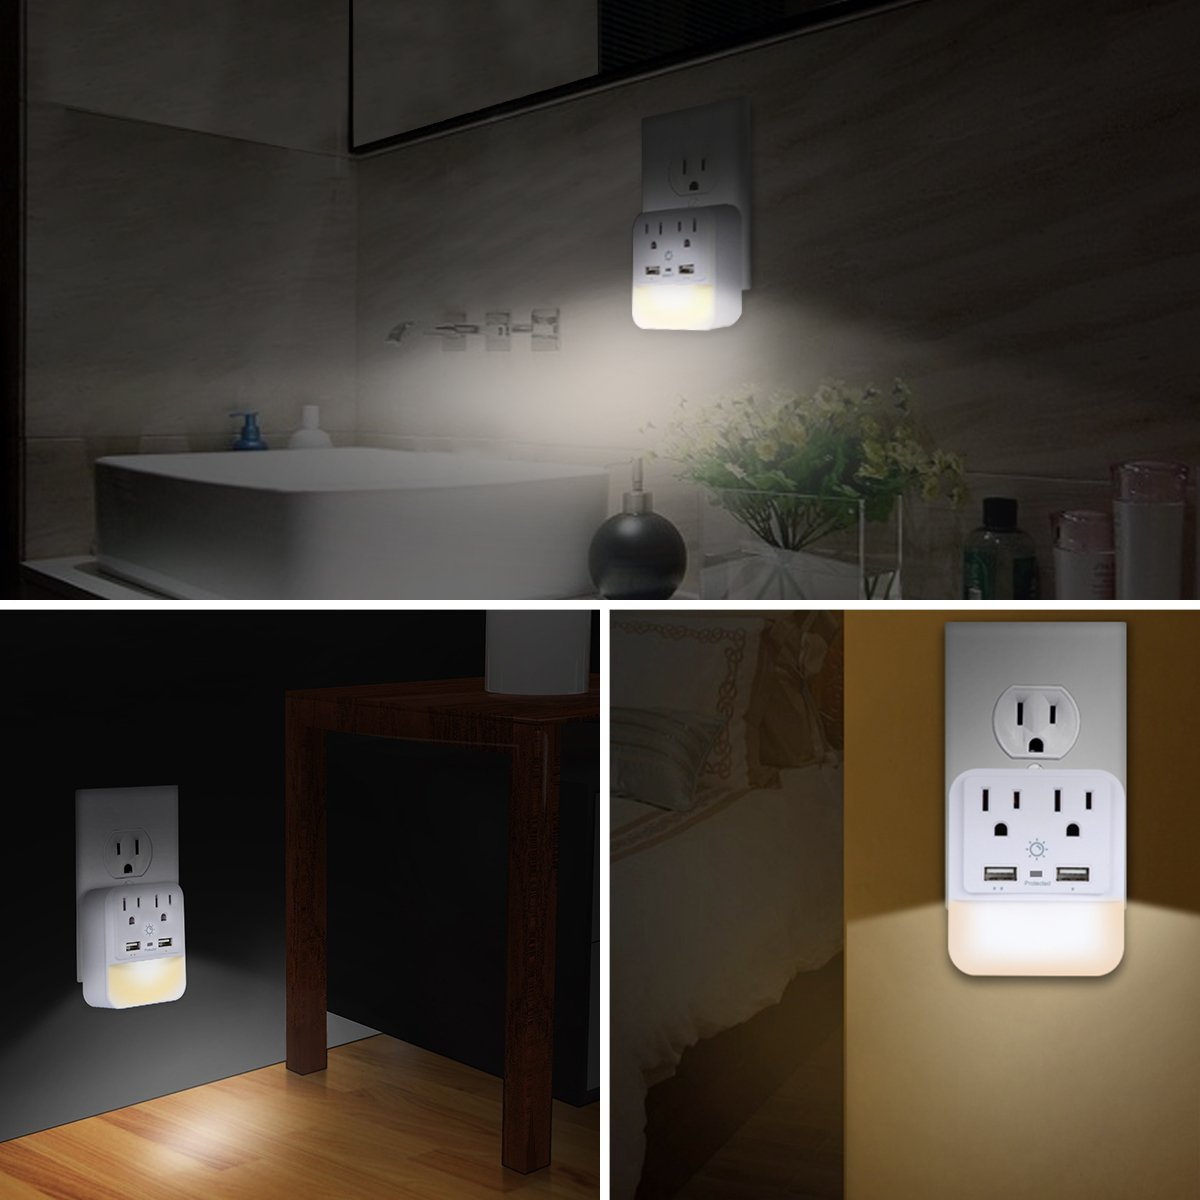 USB Wall Charger, Outlet Adapter, POWRUI 2-Pack Surge Protector(1080 Joules) Dual USB Charger Ports(2.4A Total), Dual Outlet Extender Dusk-to-Dawn Sensor Night Light, White, ETL Certified by POWRUI (Image #6)